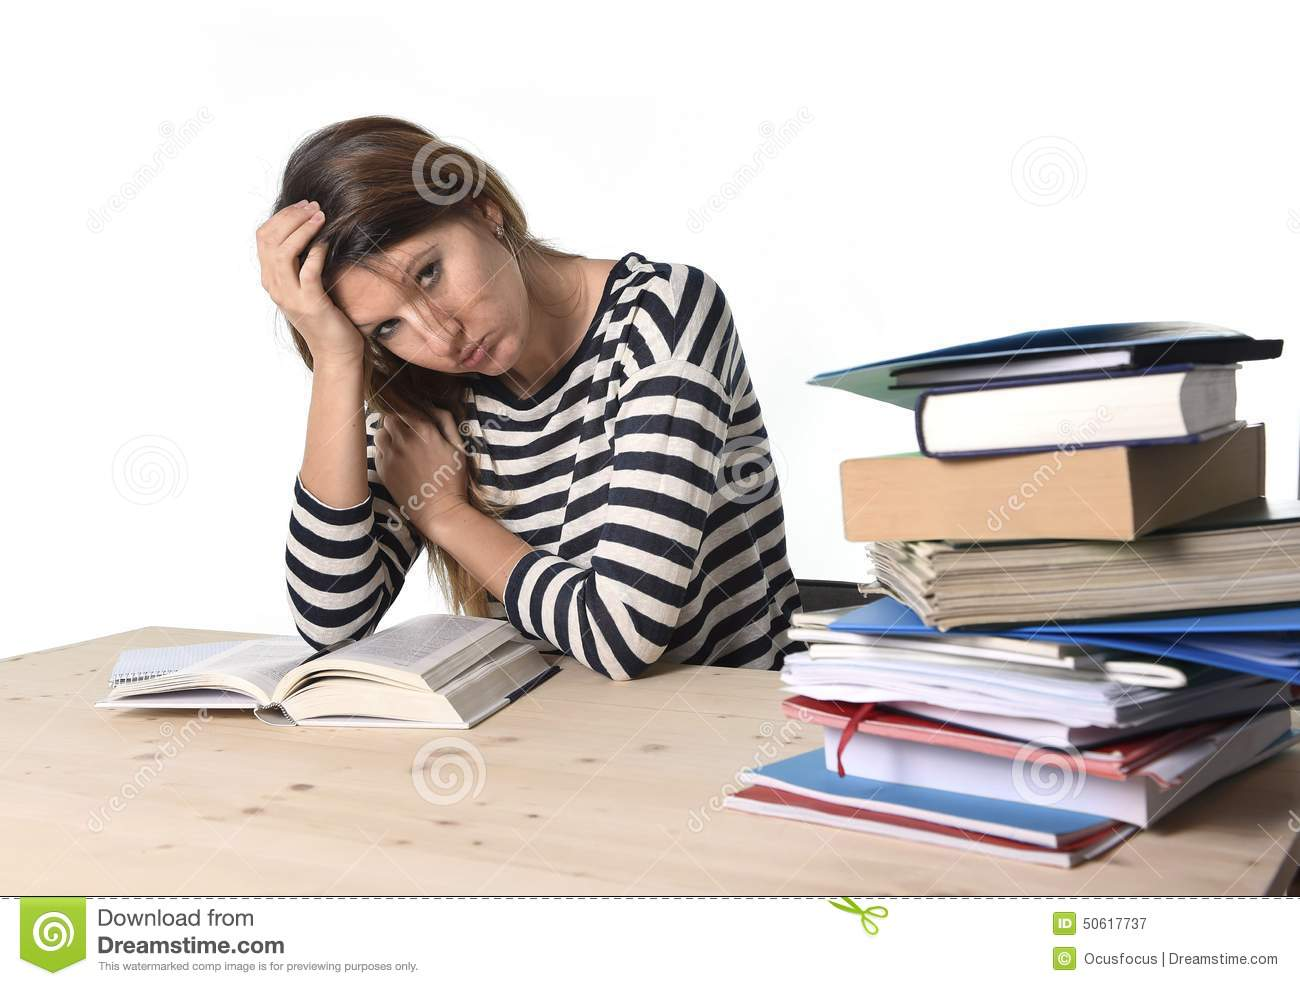 stress faced by students Stress is the body's natural response to challenges when a student experiences high levels of stress or chronic stress, regardless of her age or.